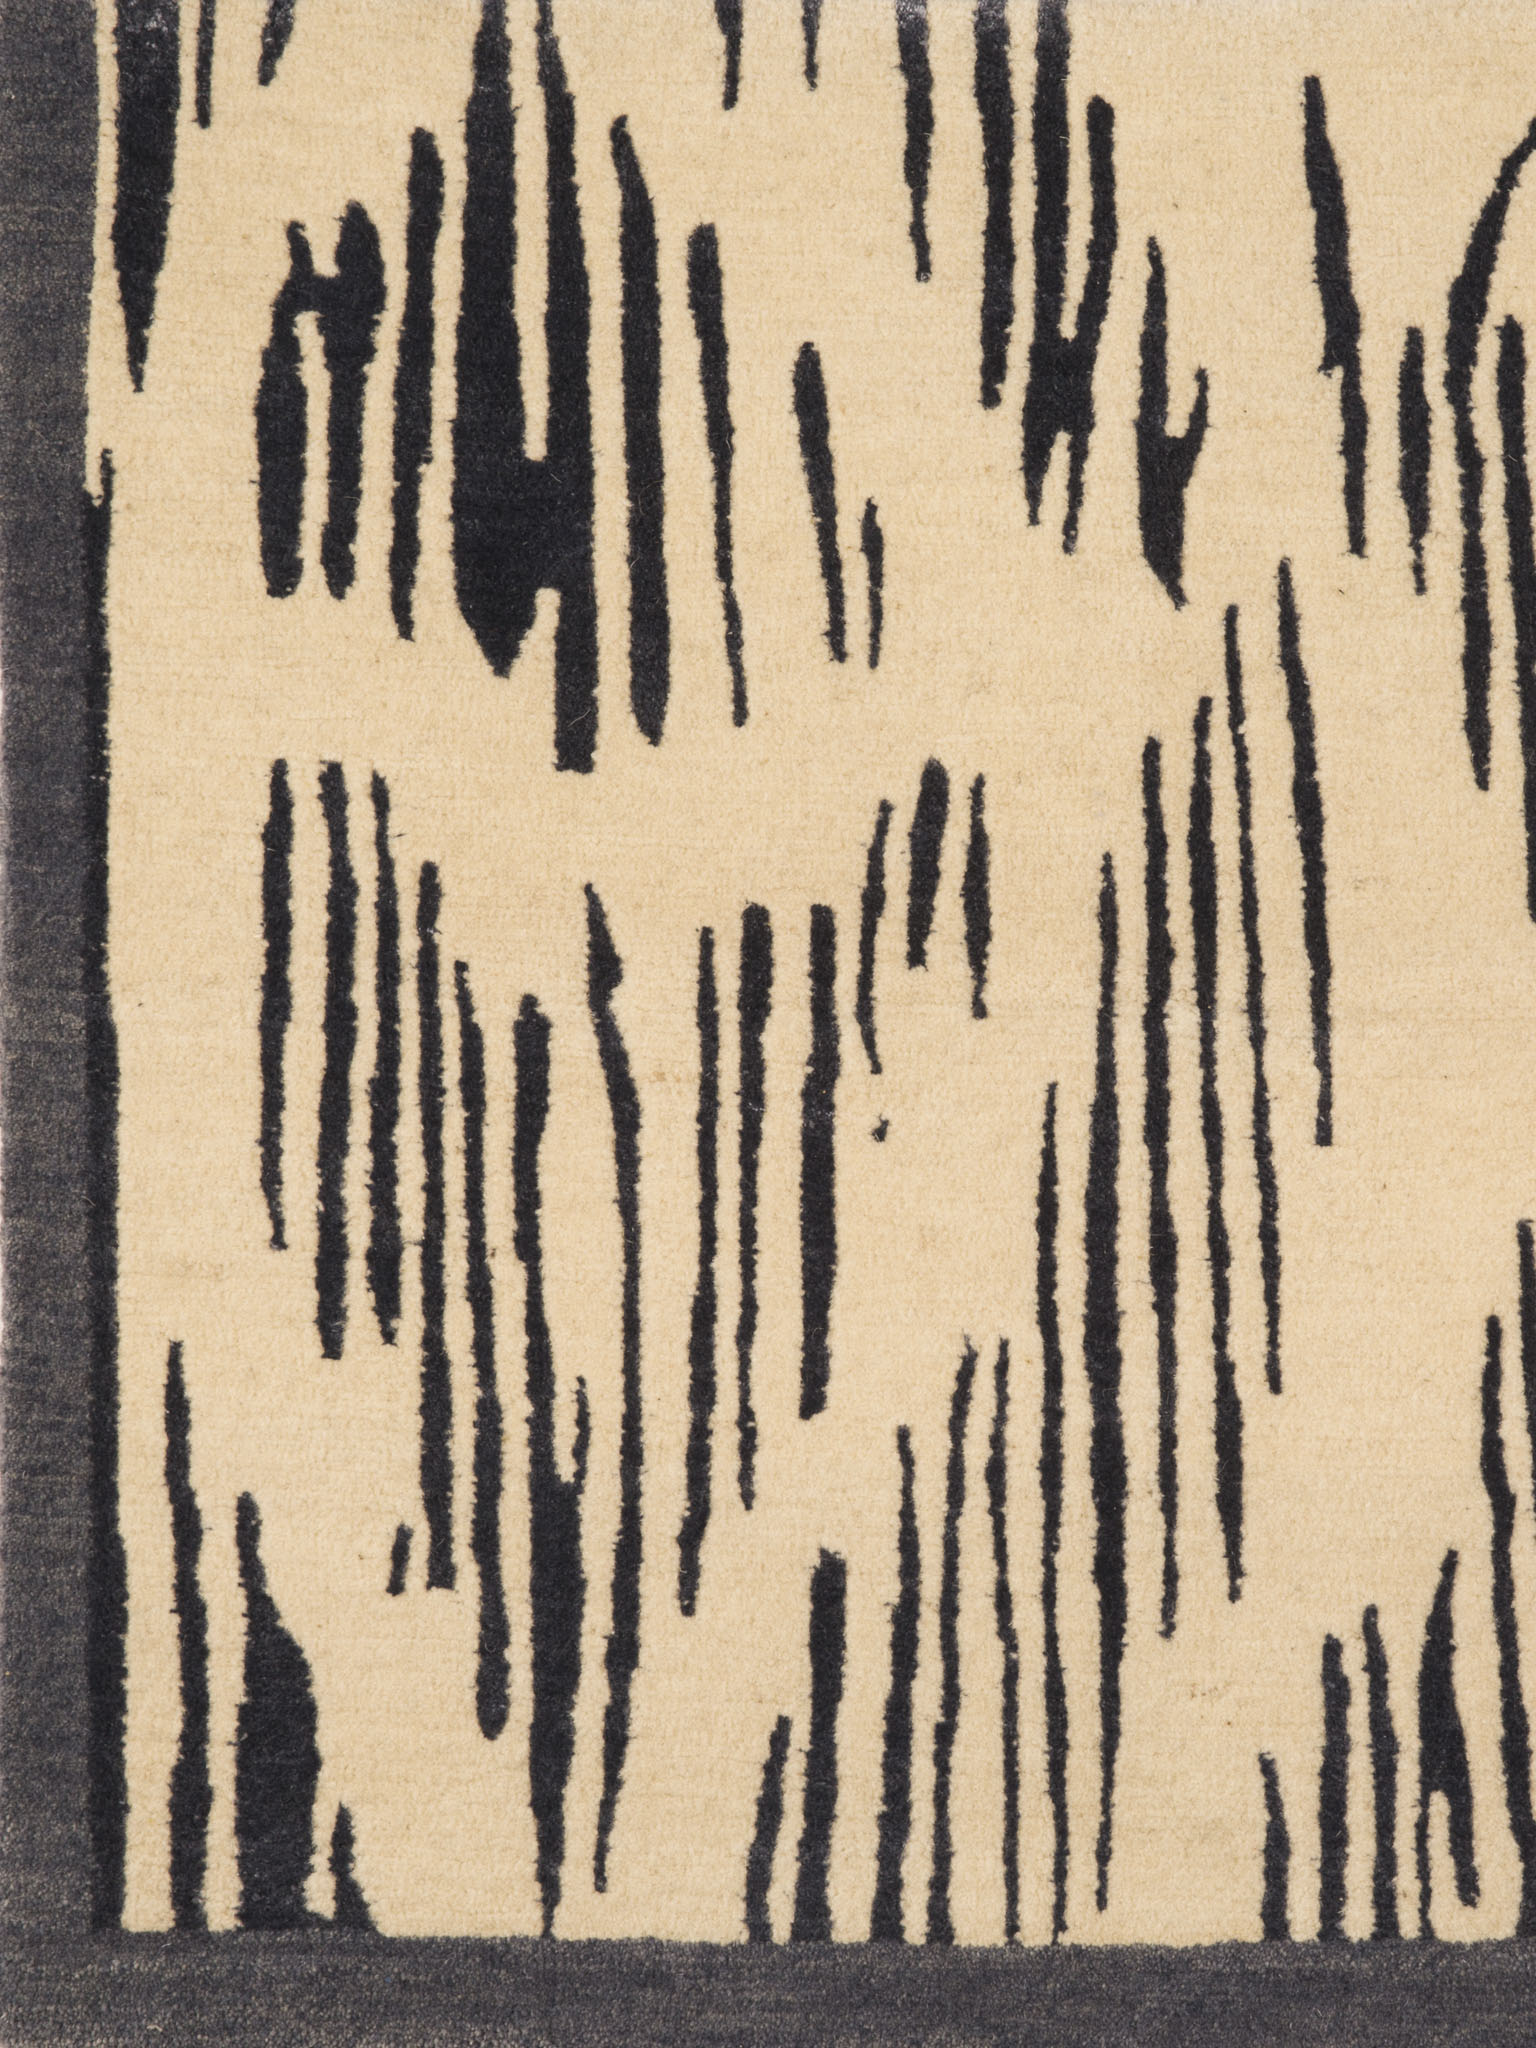 Animal Ikat VHH_12190-545